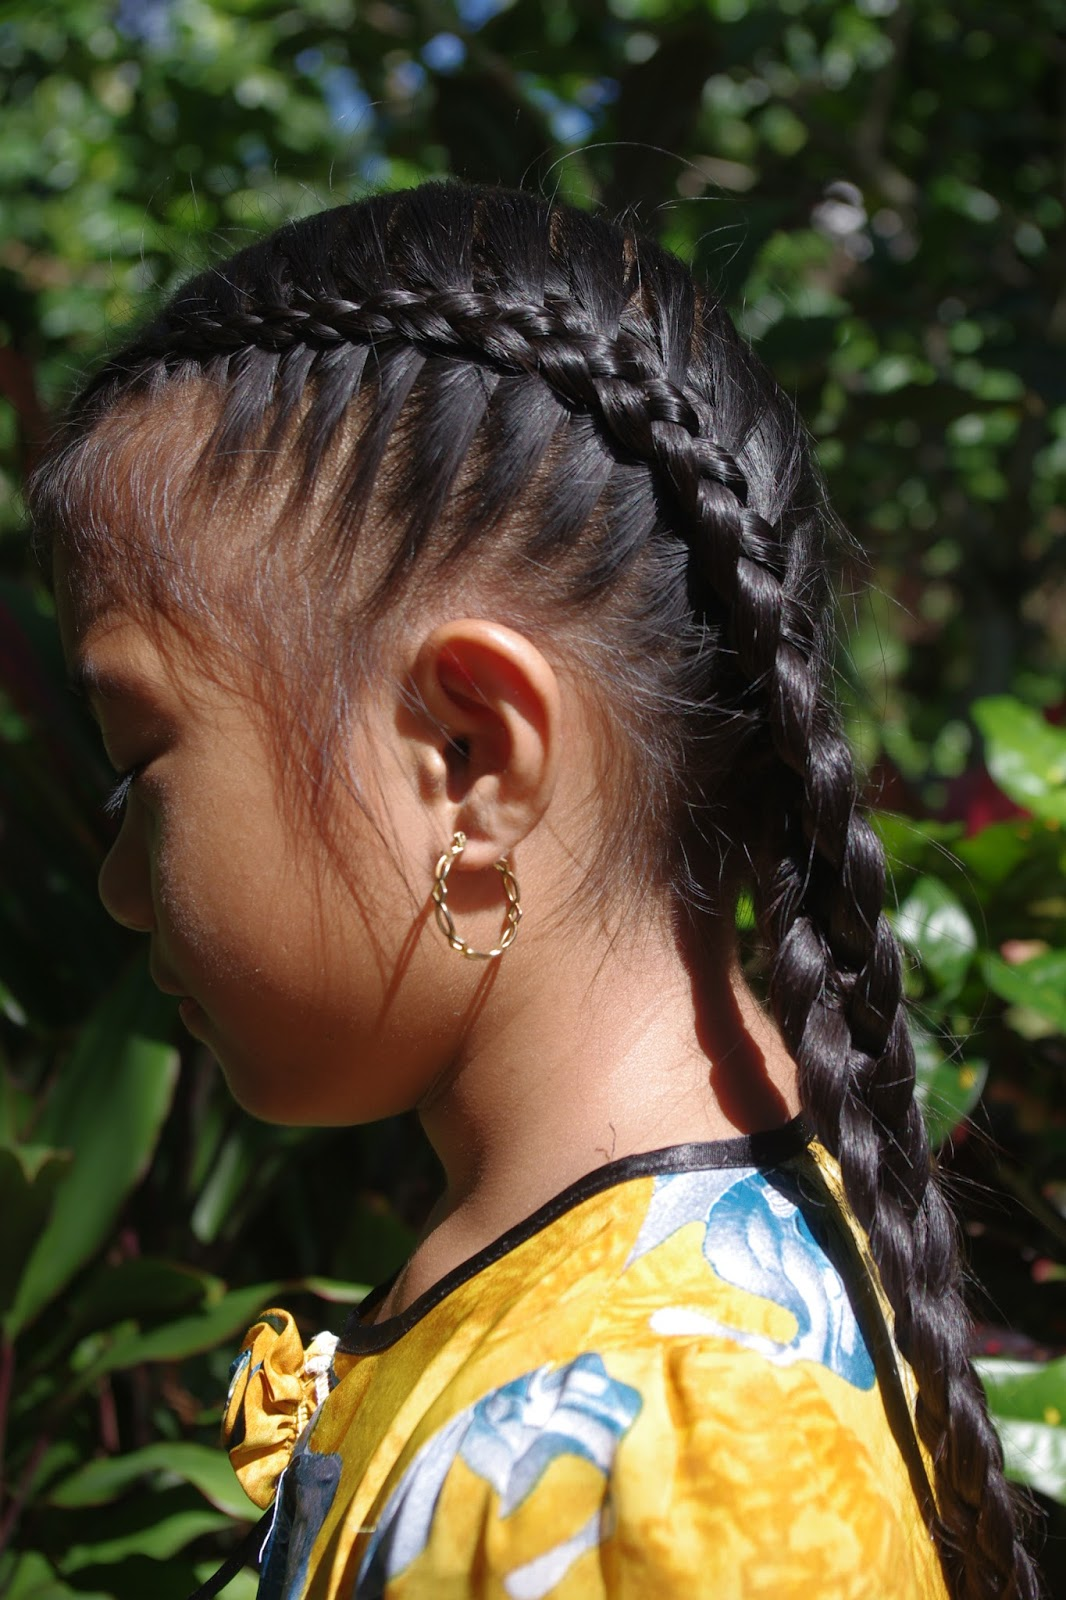 friends hairstyles : Micronesian Girl~ Double 4-strand French braids ~ New Hairstyles Today